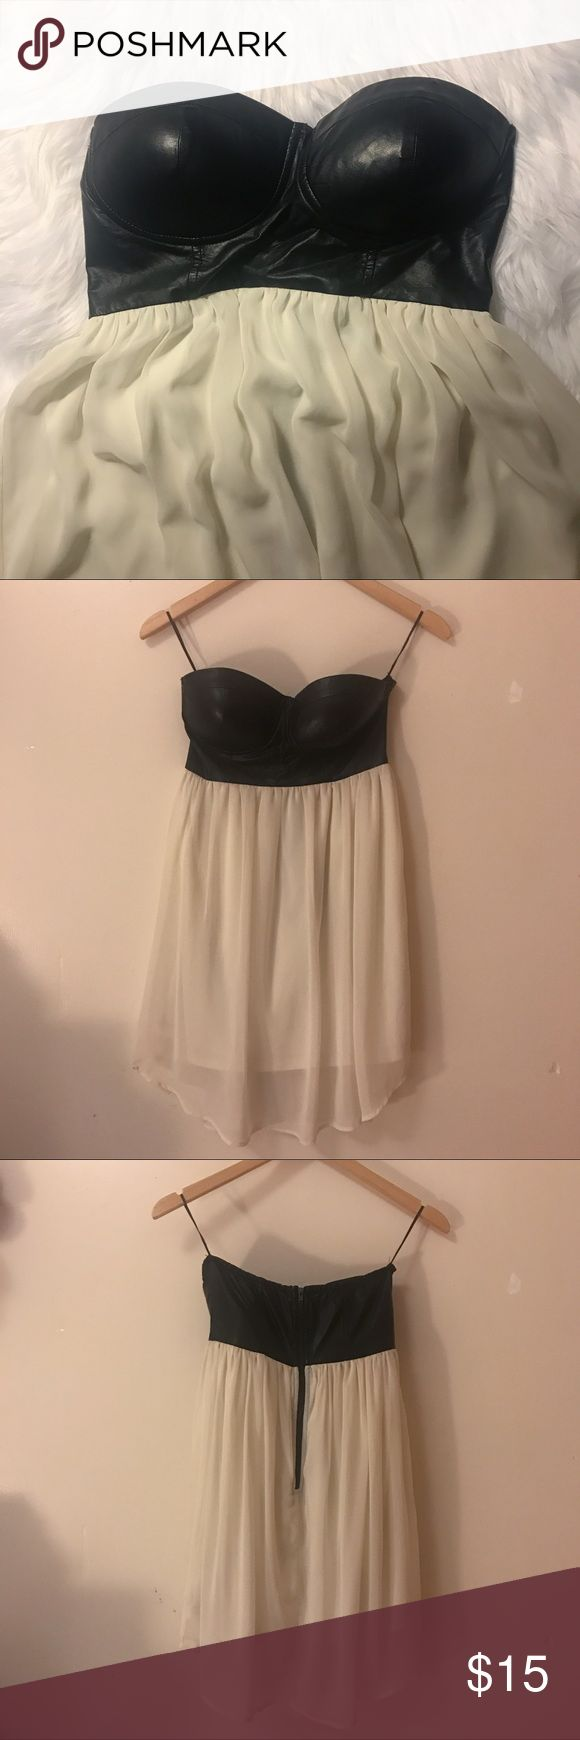 """Foreign Exchange Strapless Dress Foreign Exchange black and off white Strapless Dress. Only worn one time. Has lining inside. Bust: 12.5""""; Length: 26"""" Foreign Exchange Dresses Strapless"""